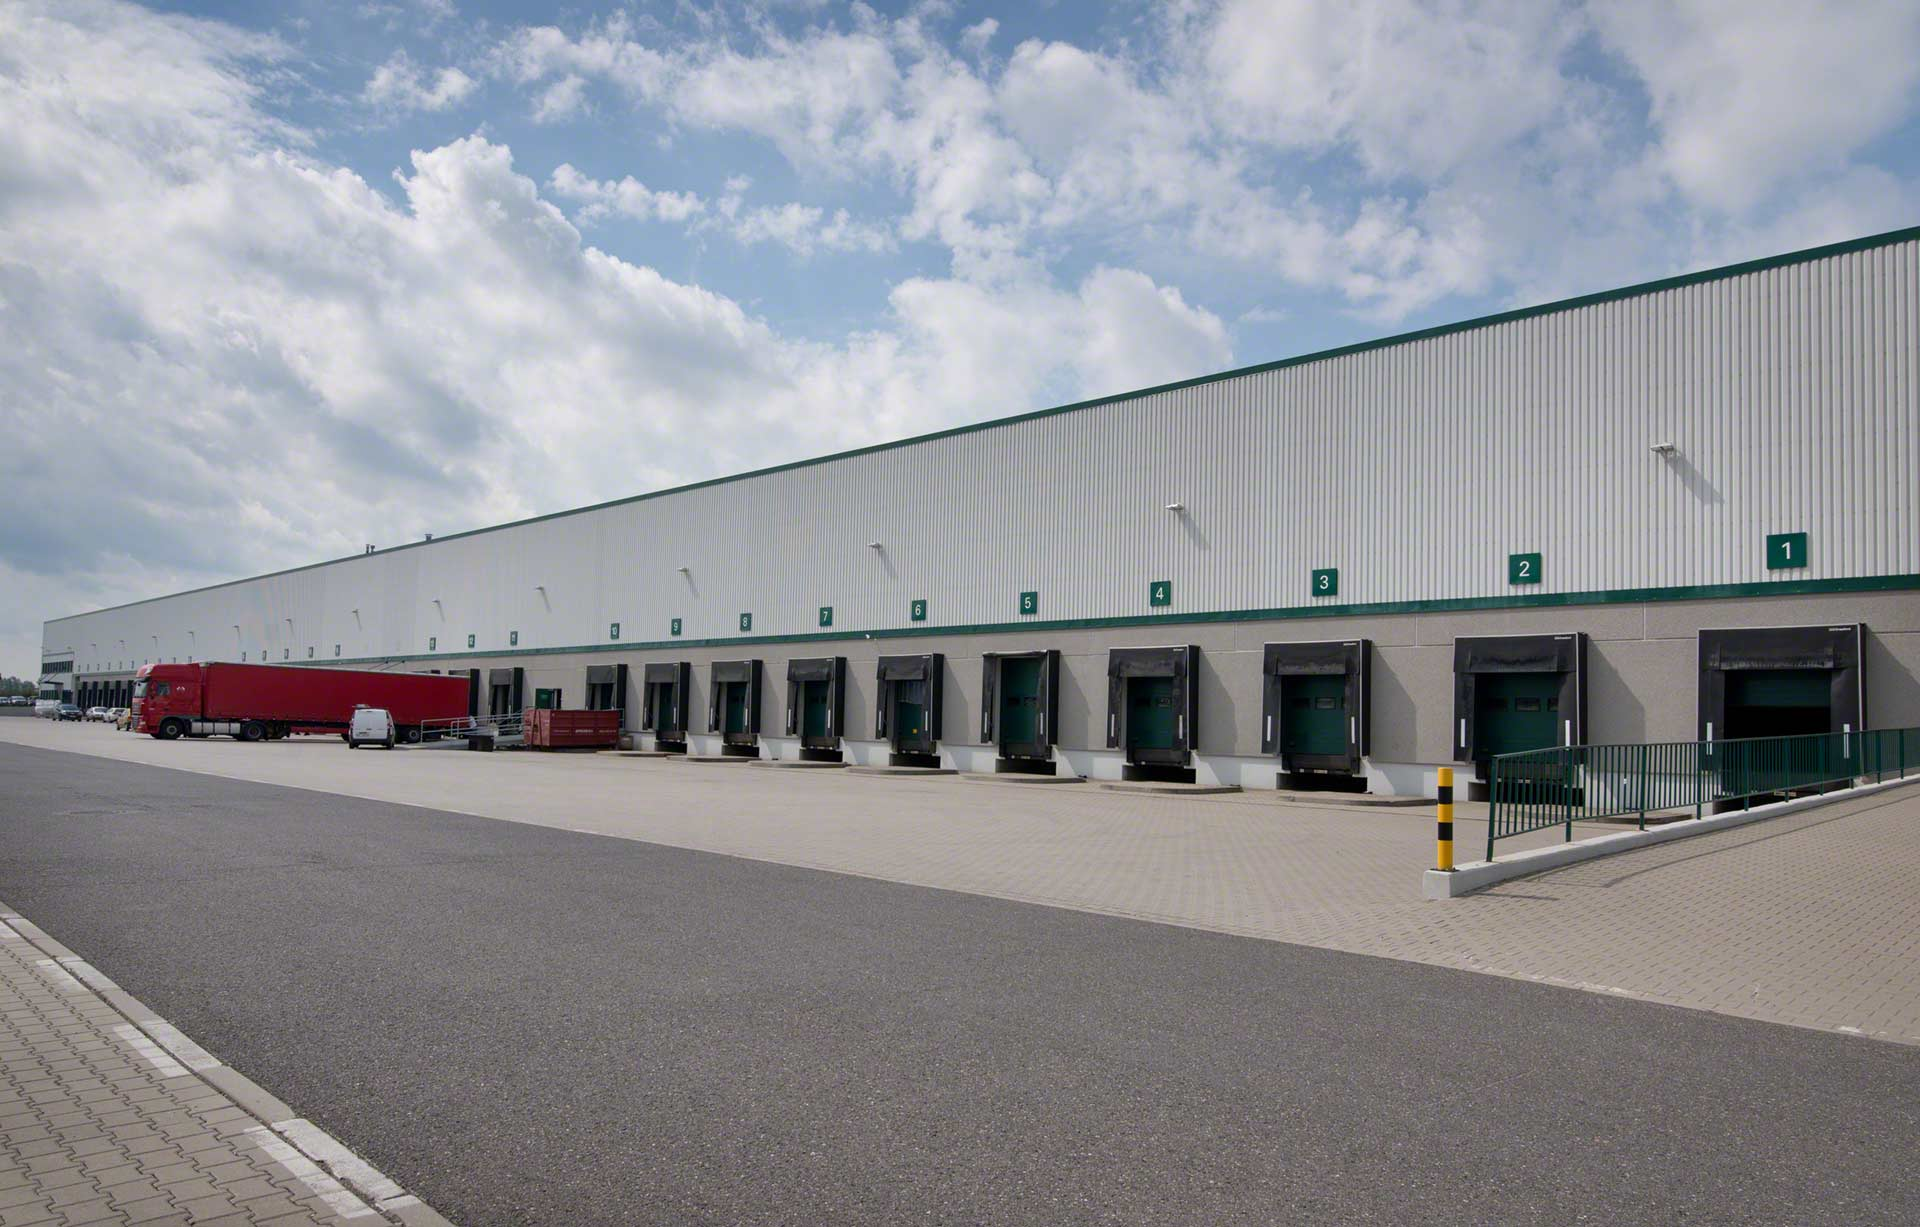 A distribution center is a logistics facility focused on goods receipt and dispatch processes